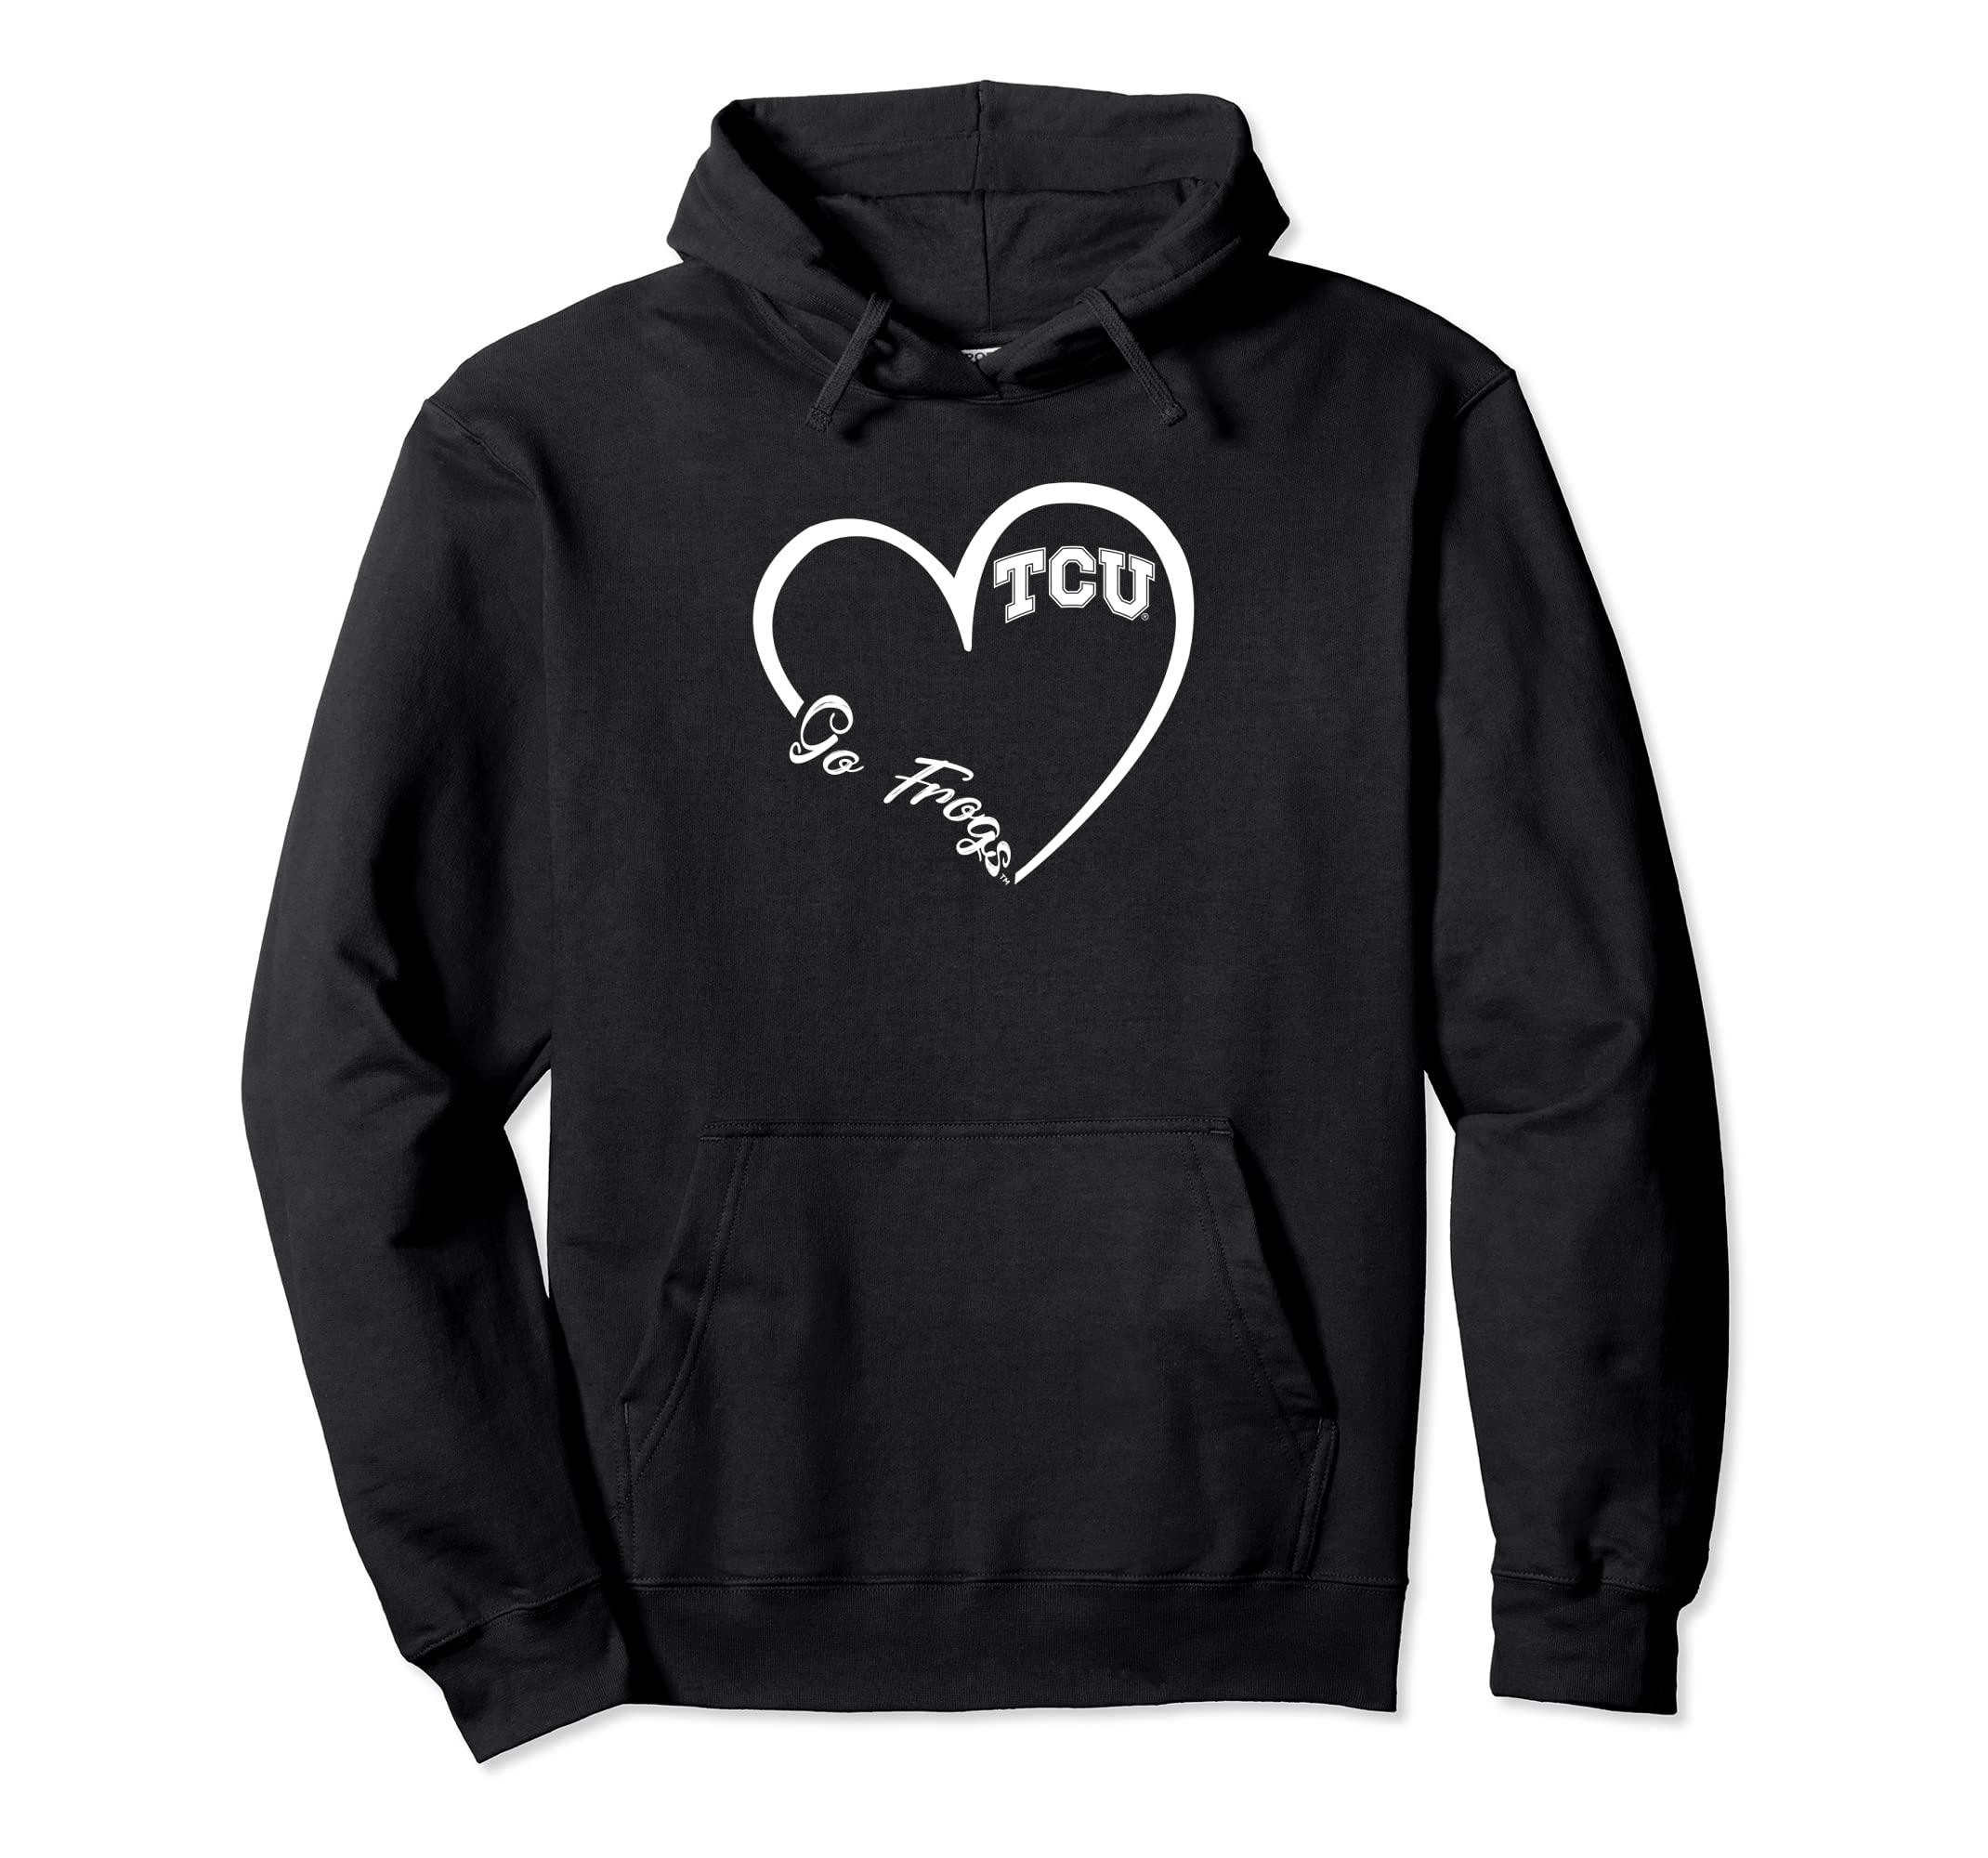 TCU Horned Frogs Heart 3/4 Hoodie - Apparel-SFL